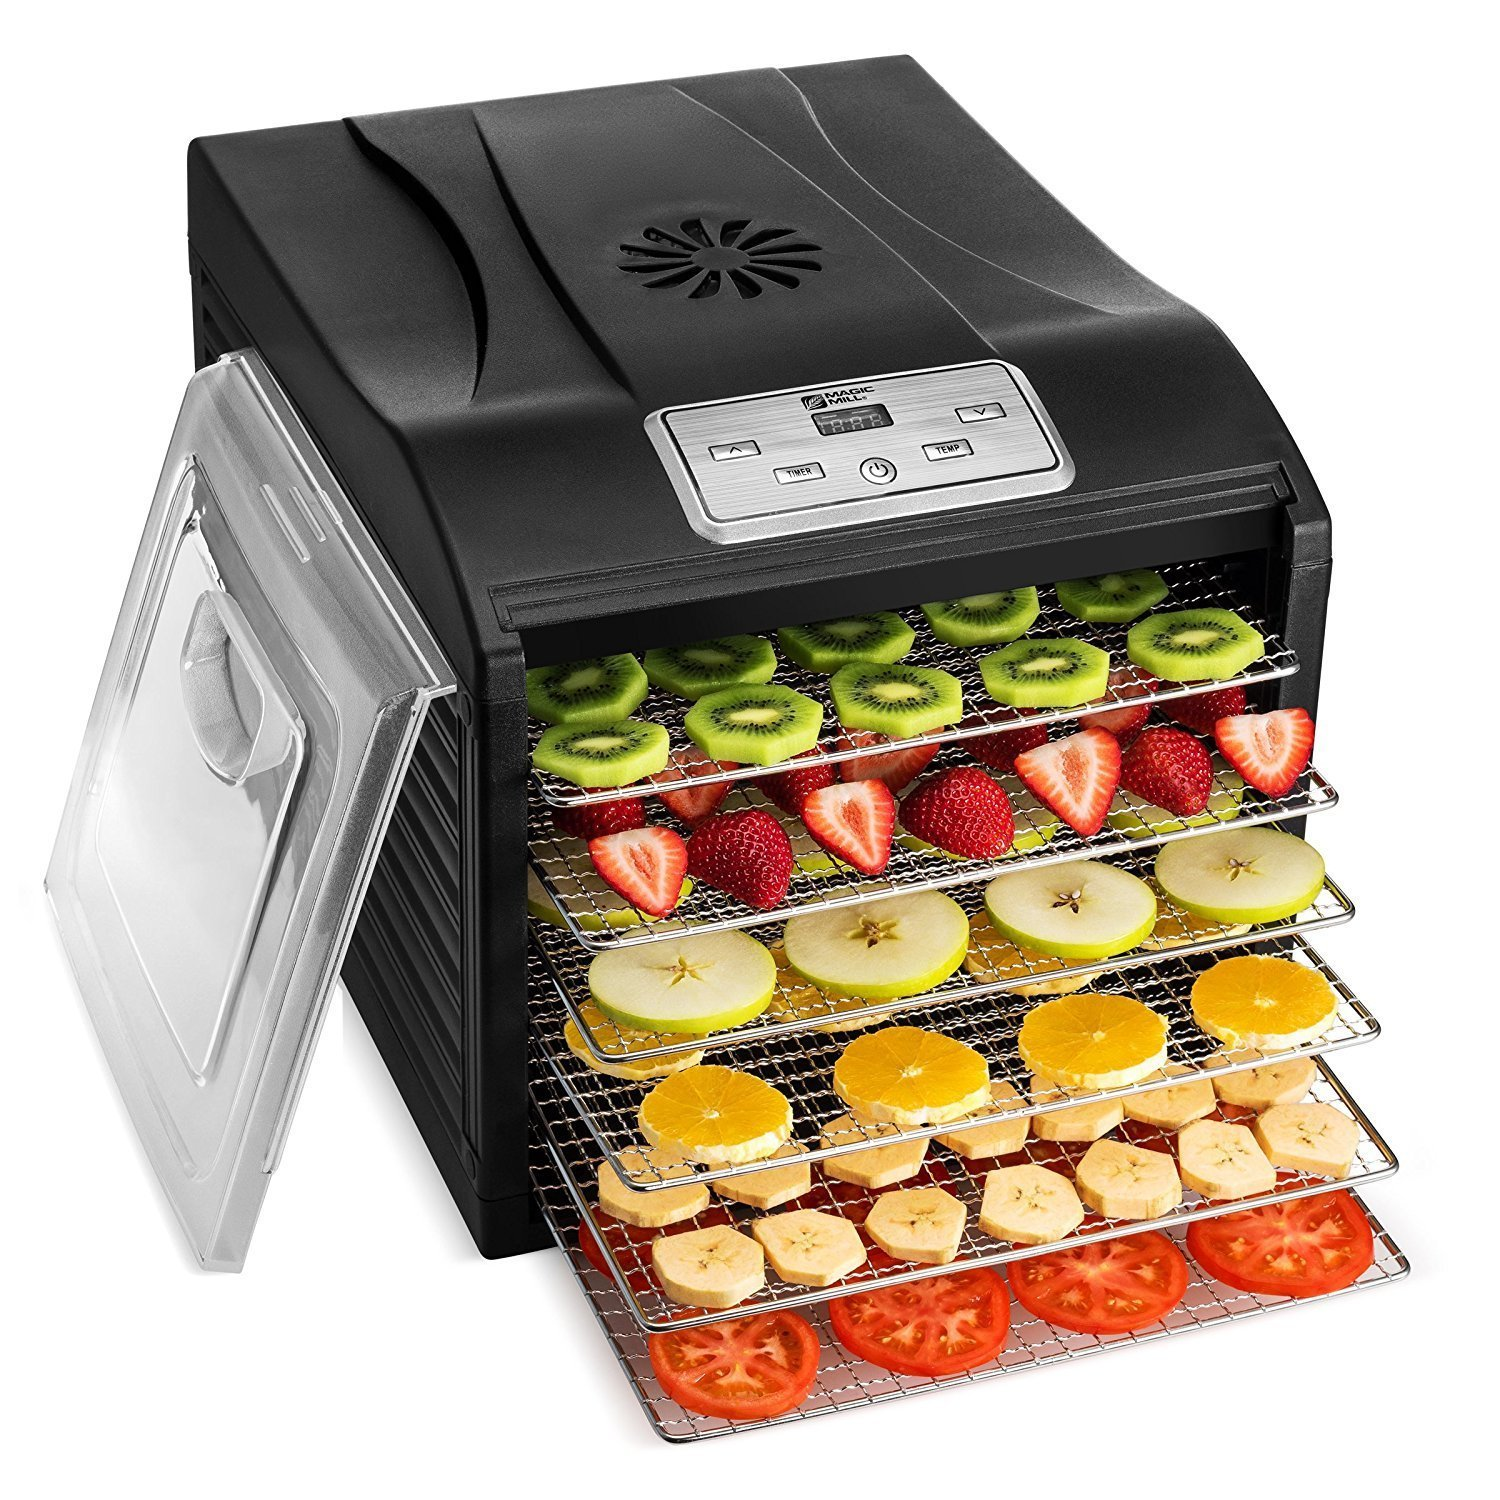 MAGIC MILL Professional Food Dehydrator Machine, 6 Stainless Steel Drying Racks, Multi-Tier Food Preserver, Digital Control BUNDLE BONUS 2 Fruit Leather Trays, 1 Fine Mesh Sheets, 1 Set Ovens Mitts by Magic Mill (Image #1)